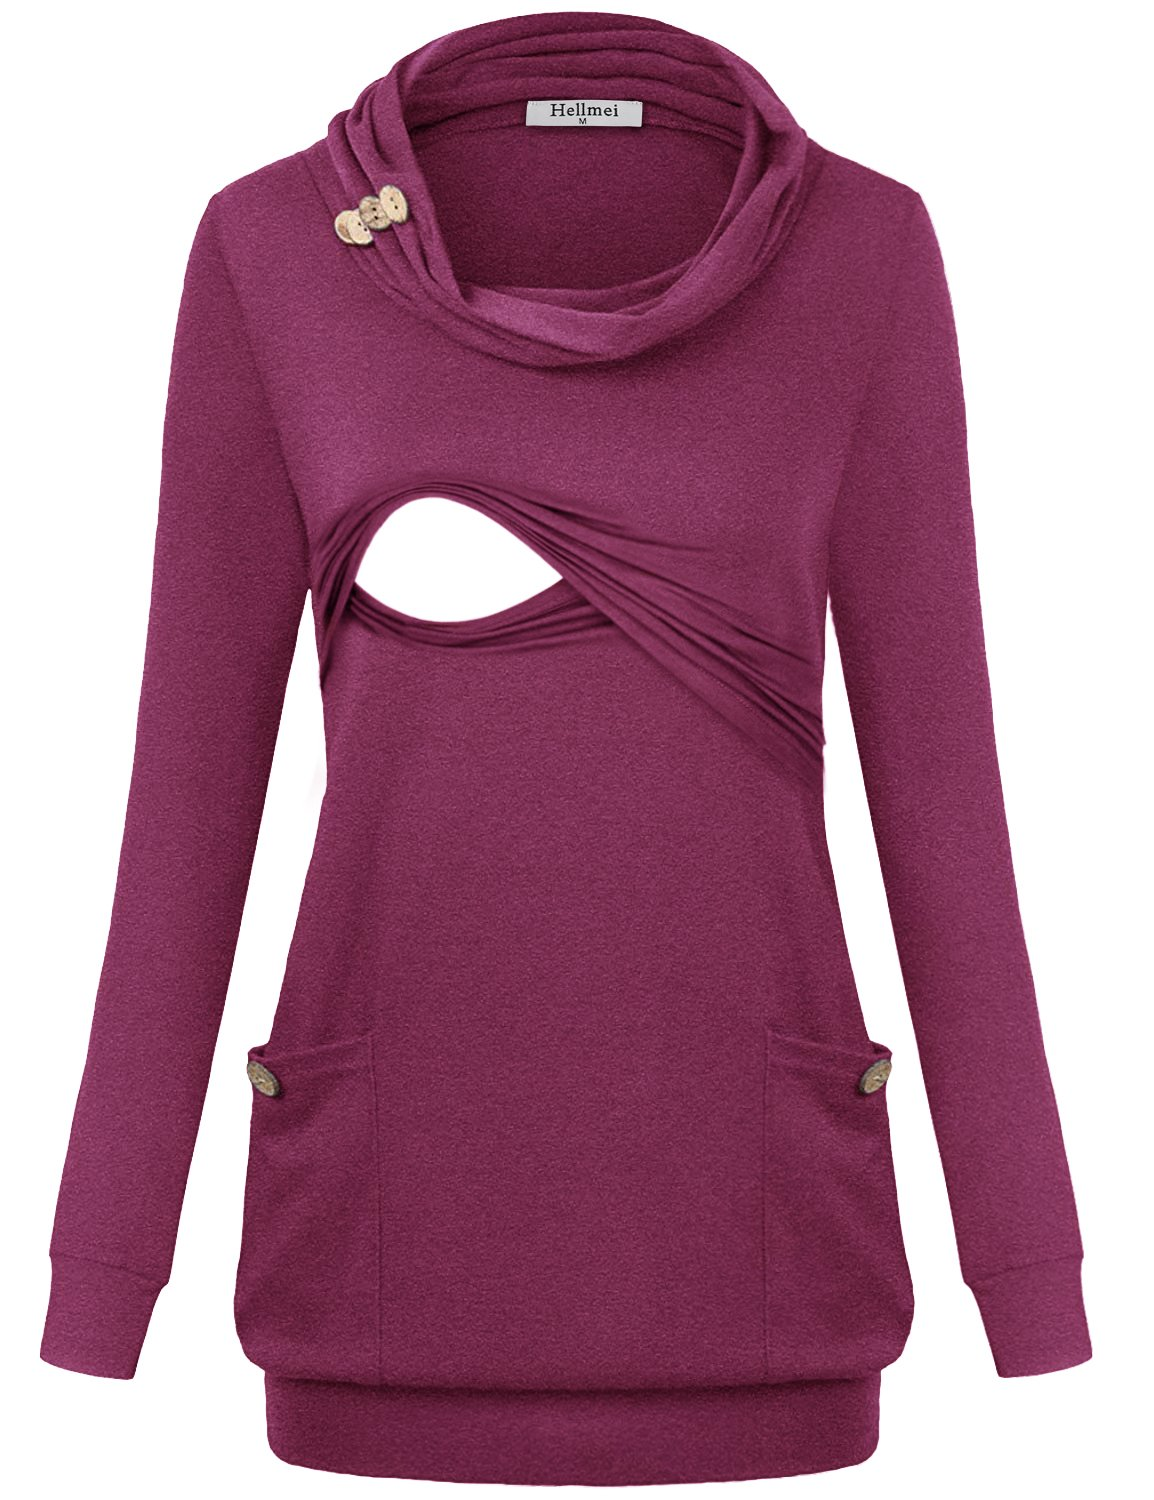 Hellmei Womens Nursing Tops, Ladies Petite Trendy Draped Prime Misses Shirt Long Sleeve Jersey Cotton Trapeze Cowl Neck Tunic A-Line Pleat Stretchy Business Casual Clothing Rose Red M by Hellmei (Image #1)